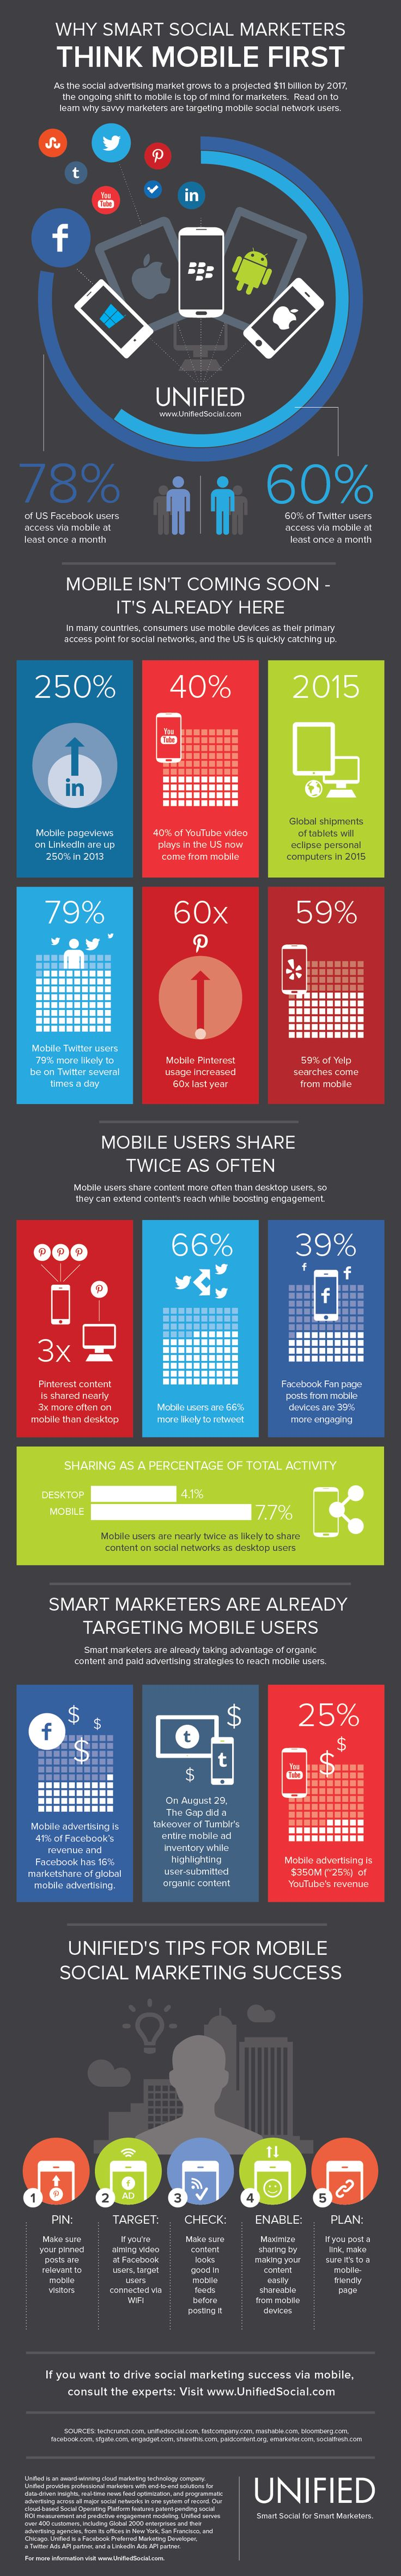 An informative infographic highlighting the importance of mobile media.